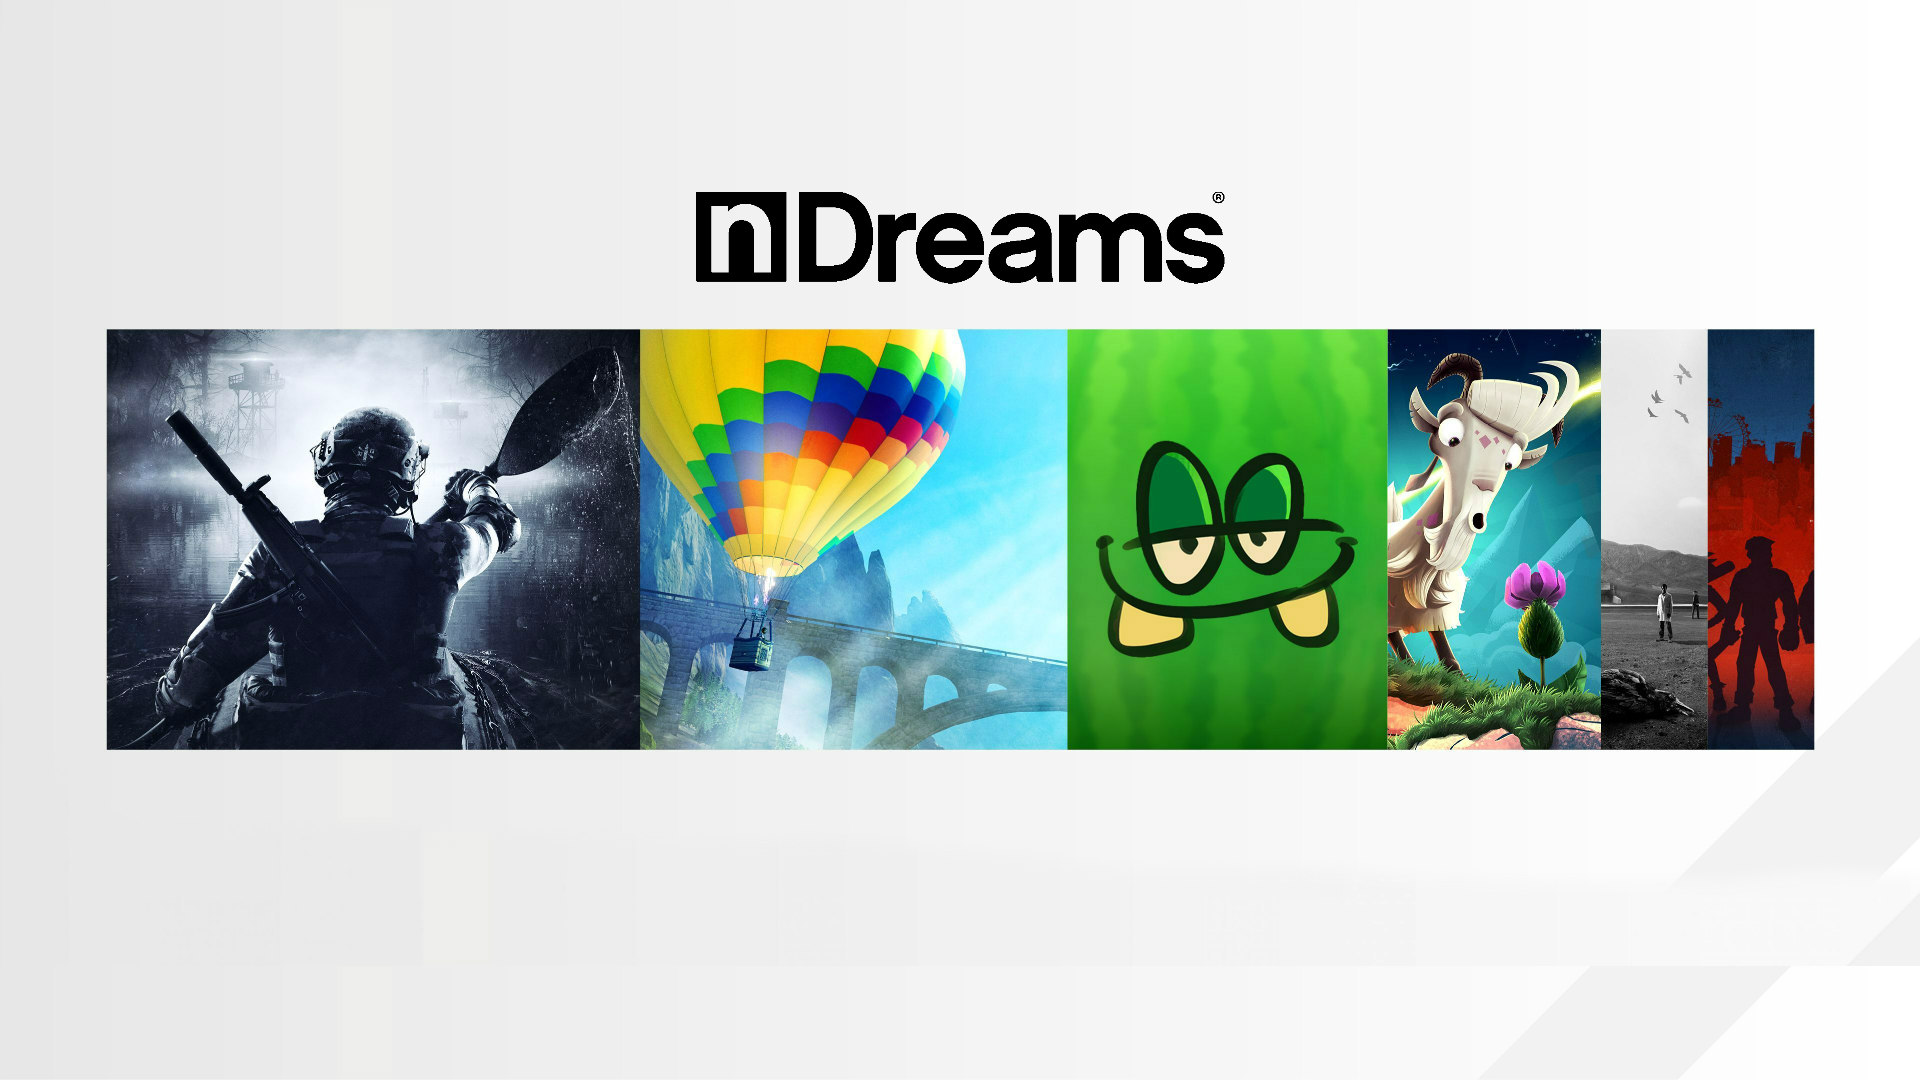 nDreams Opening Second VR Studio Focused on Live-service Games